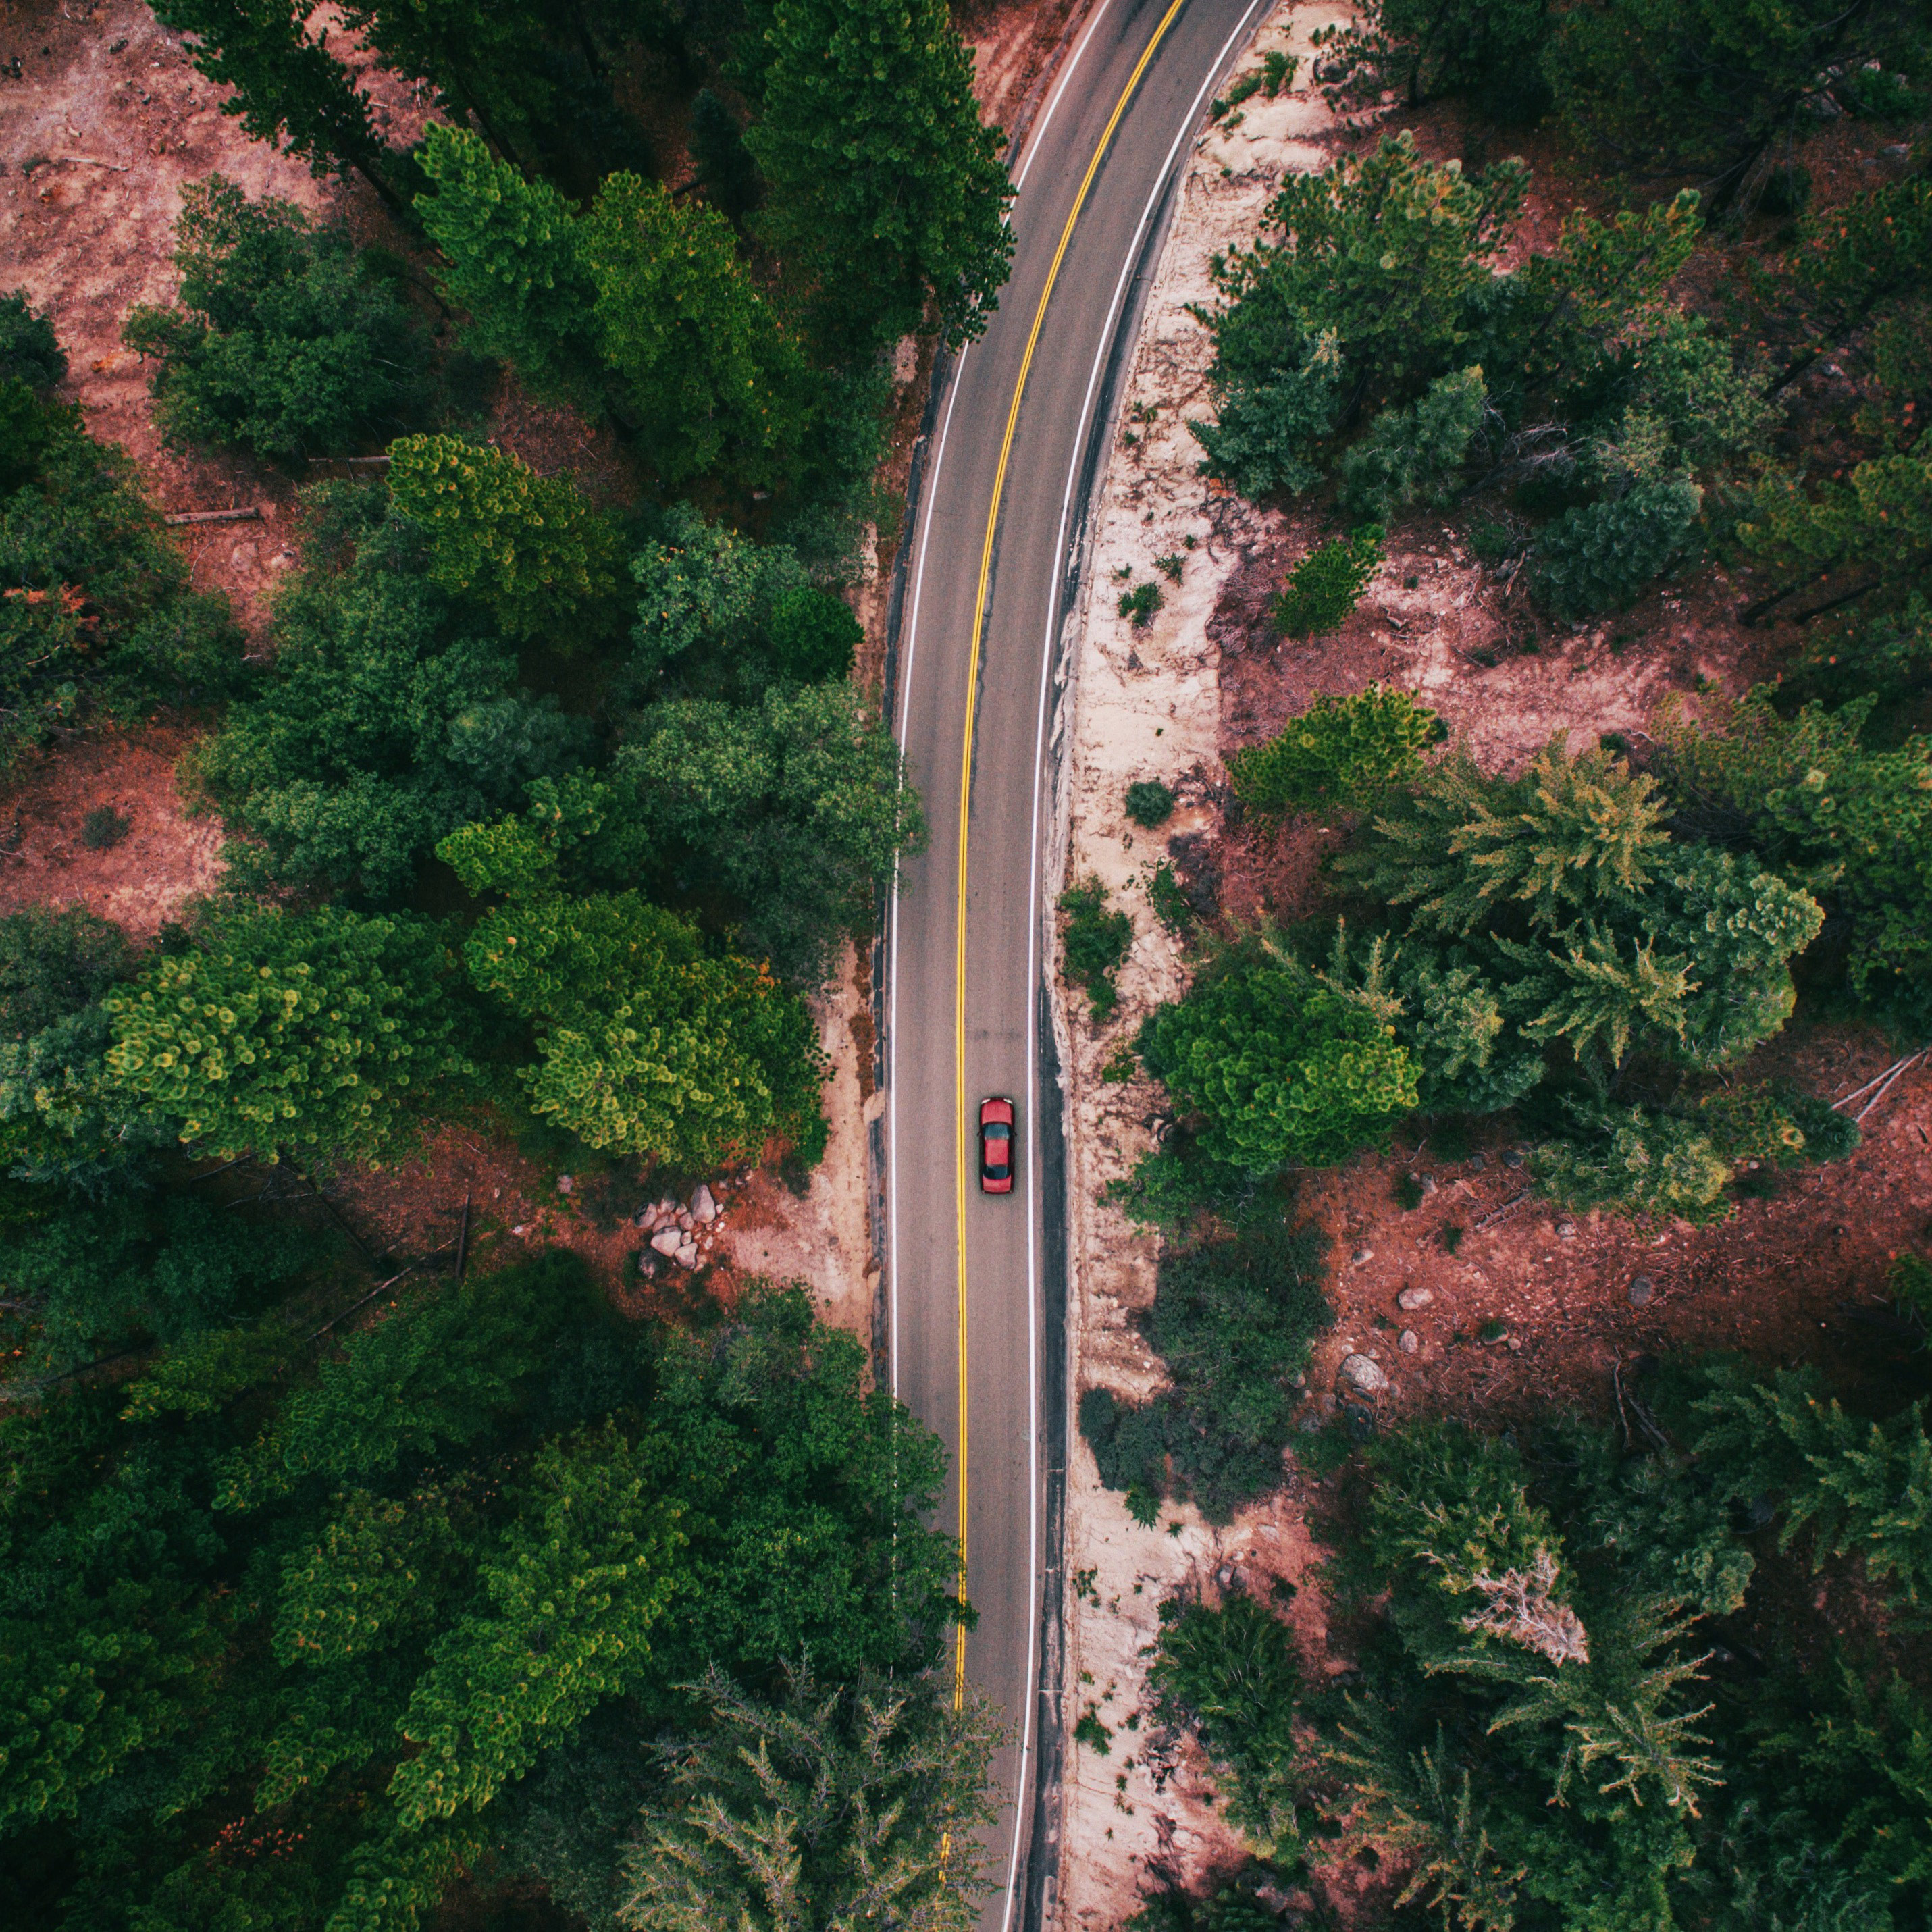 Drone Photography Tips From A Pro